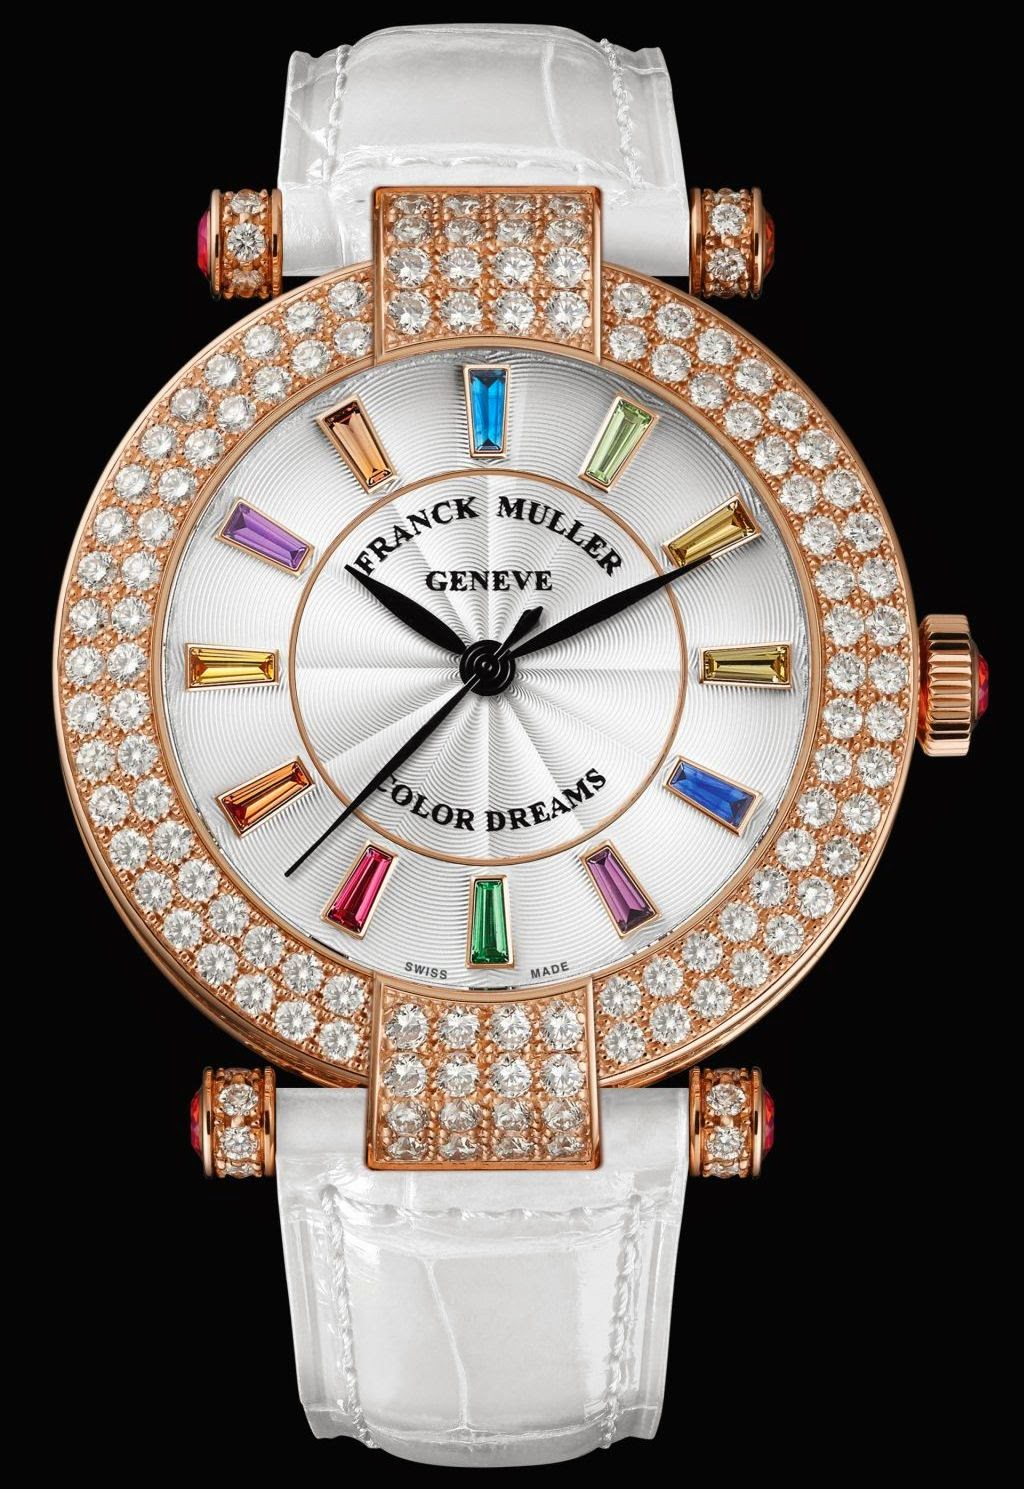 Ladies Franck Muller Color Dreams replica